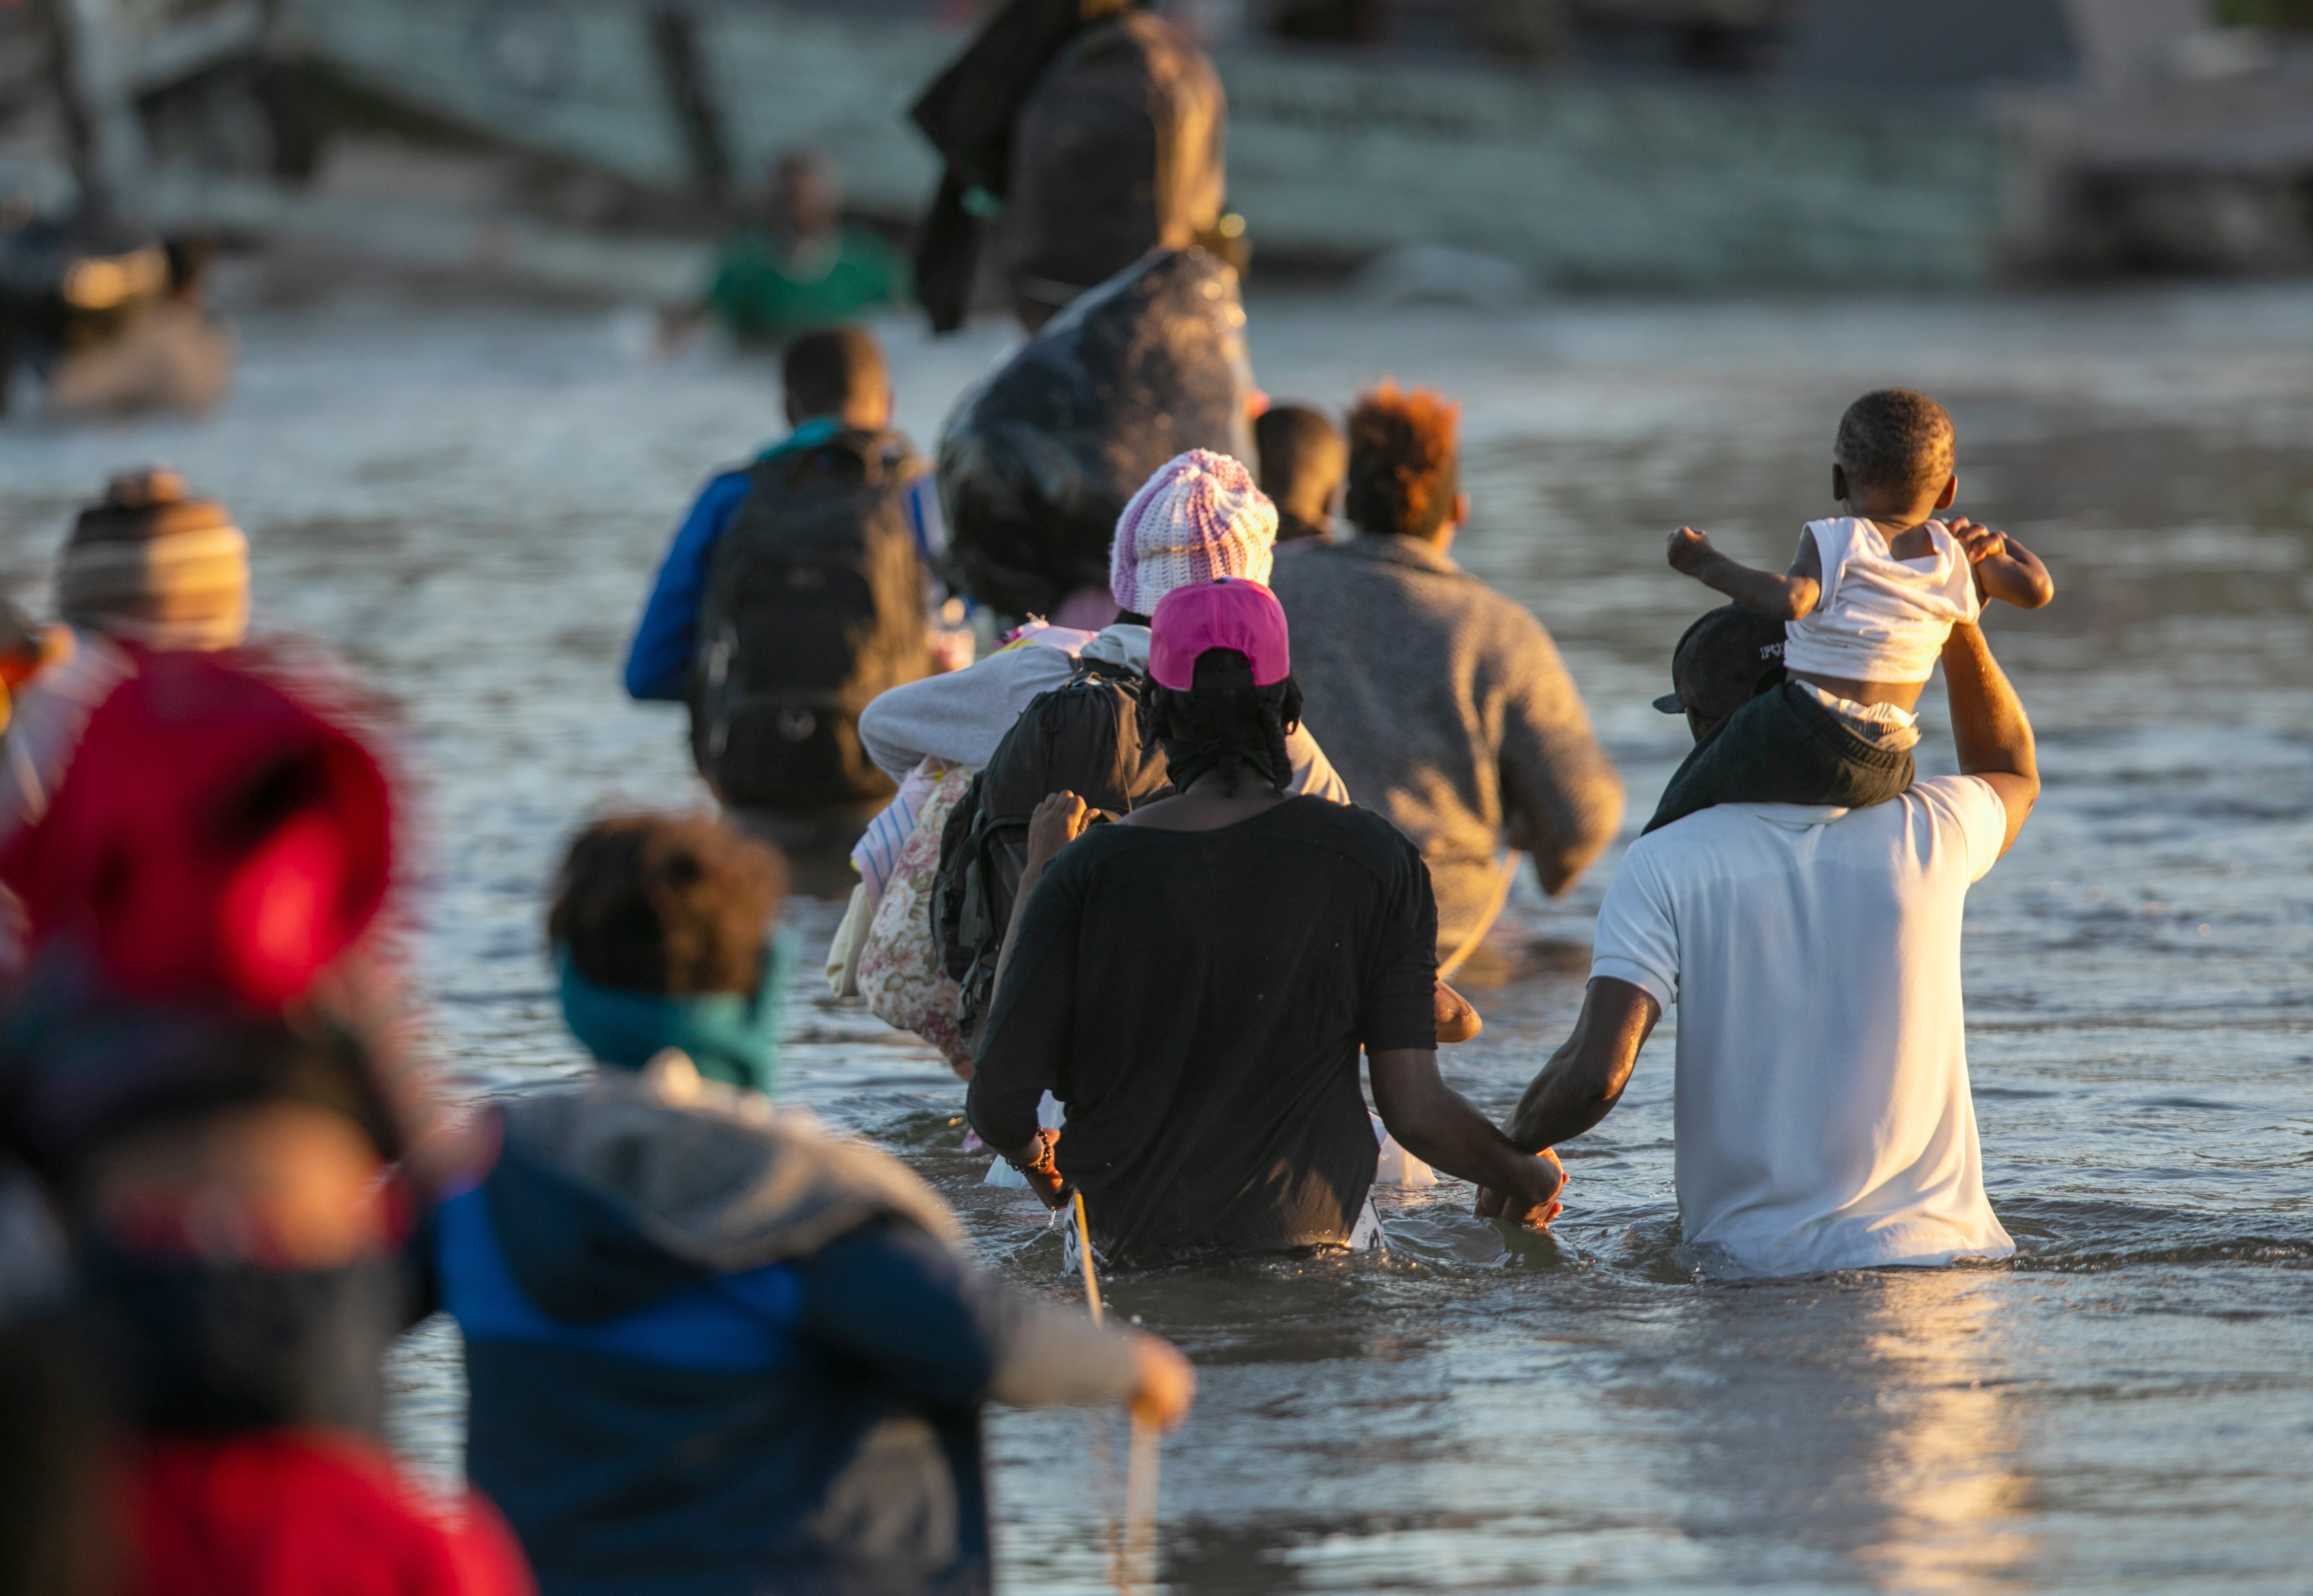 Haitian immigrant families cross the Rio Grande into Del Rio, Texas from Ciudad Acuna, Mexico. (Photo by John Moore/Getty Images)